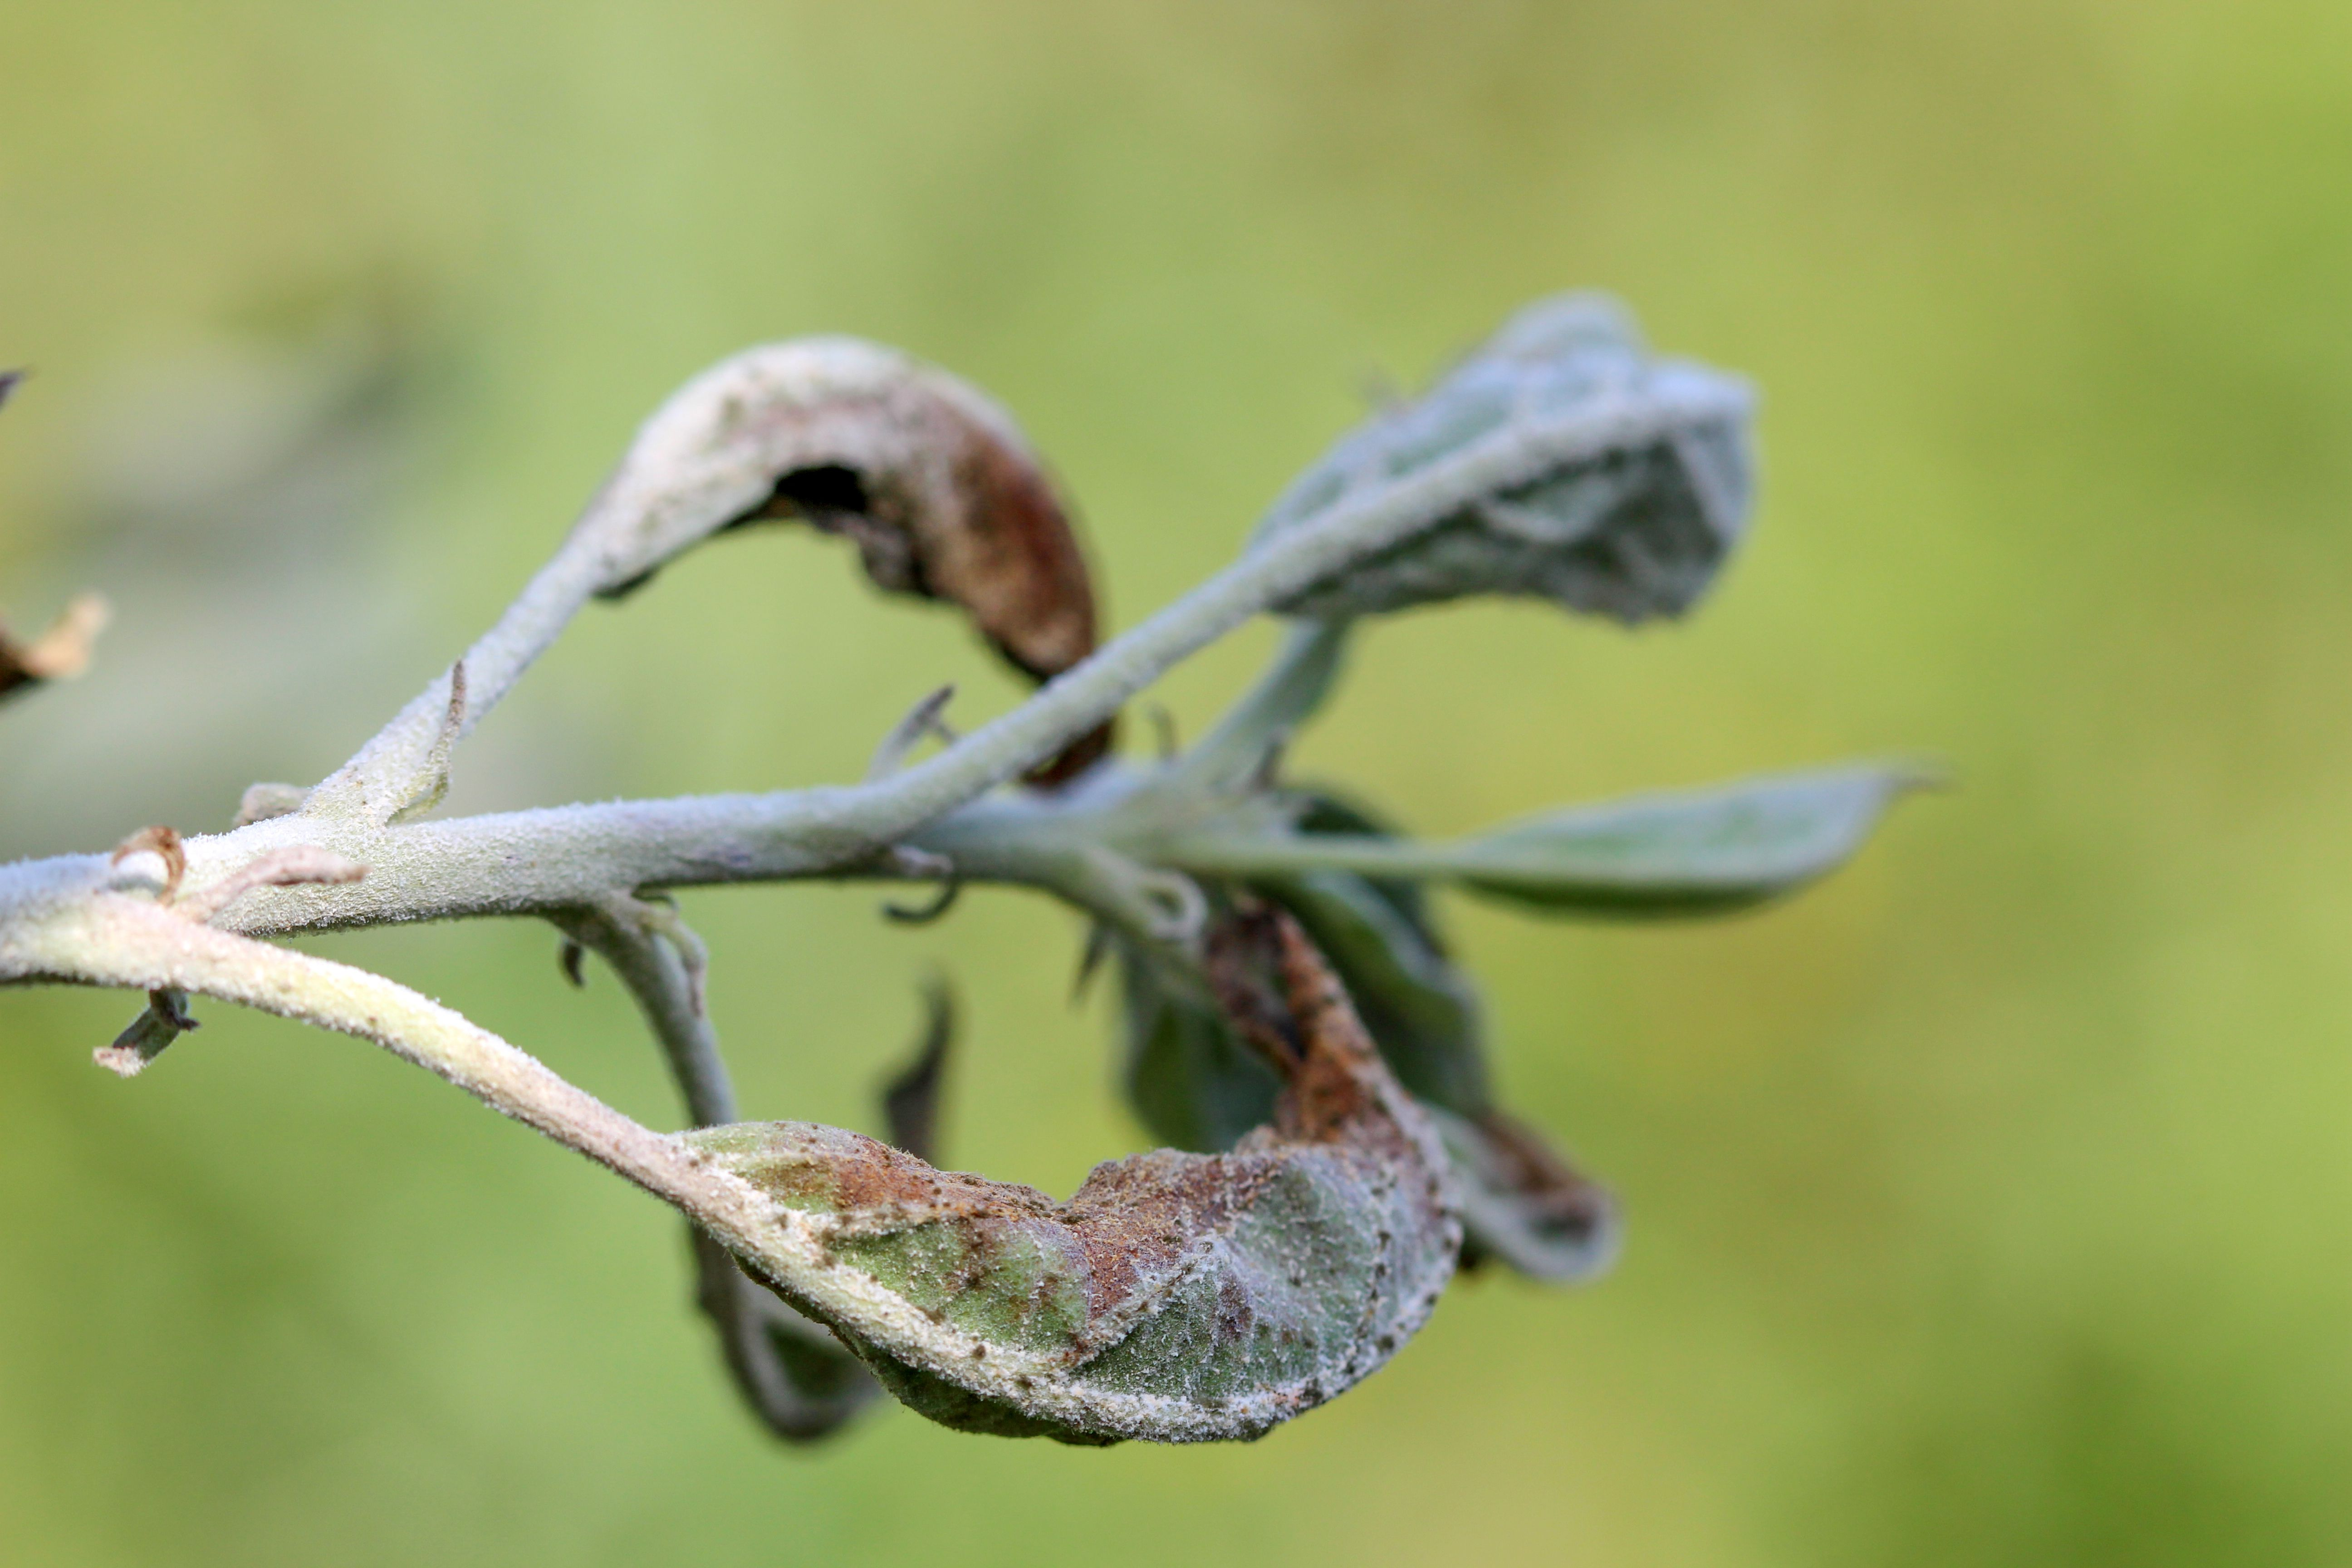 apple leaves infected and damaged by fungus disease powdery mildew